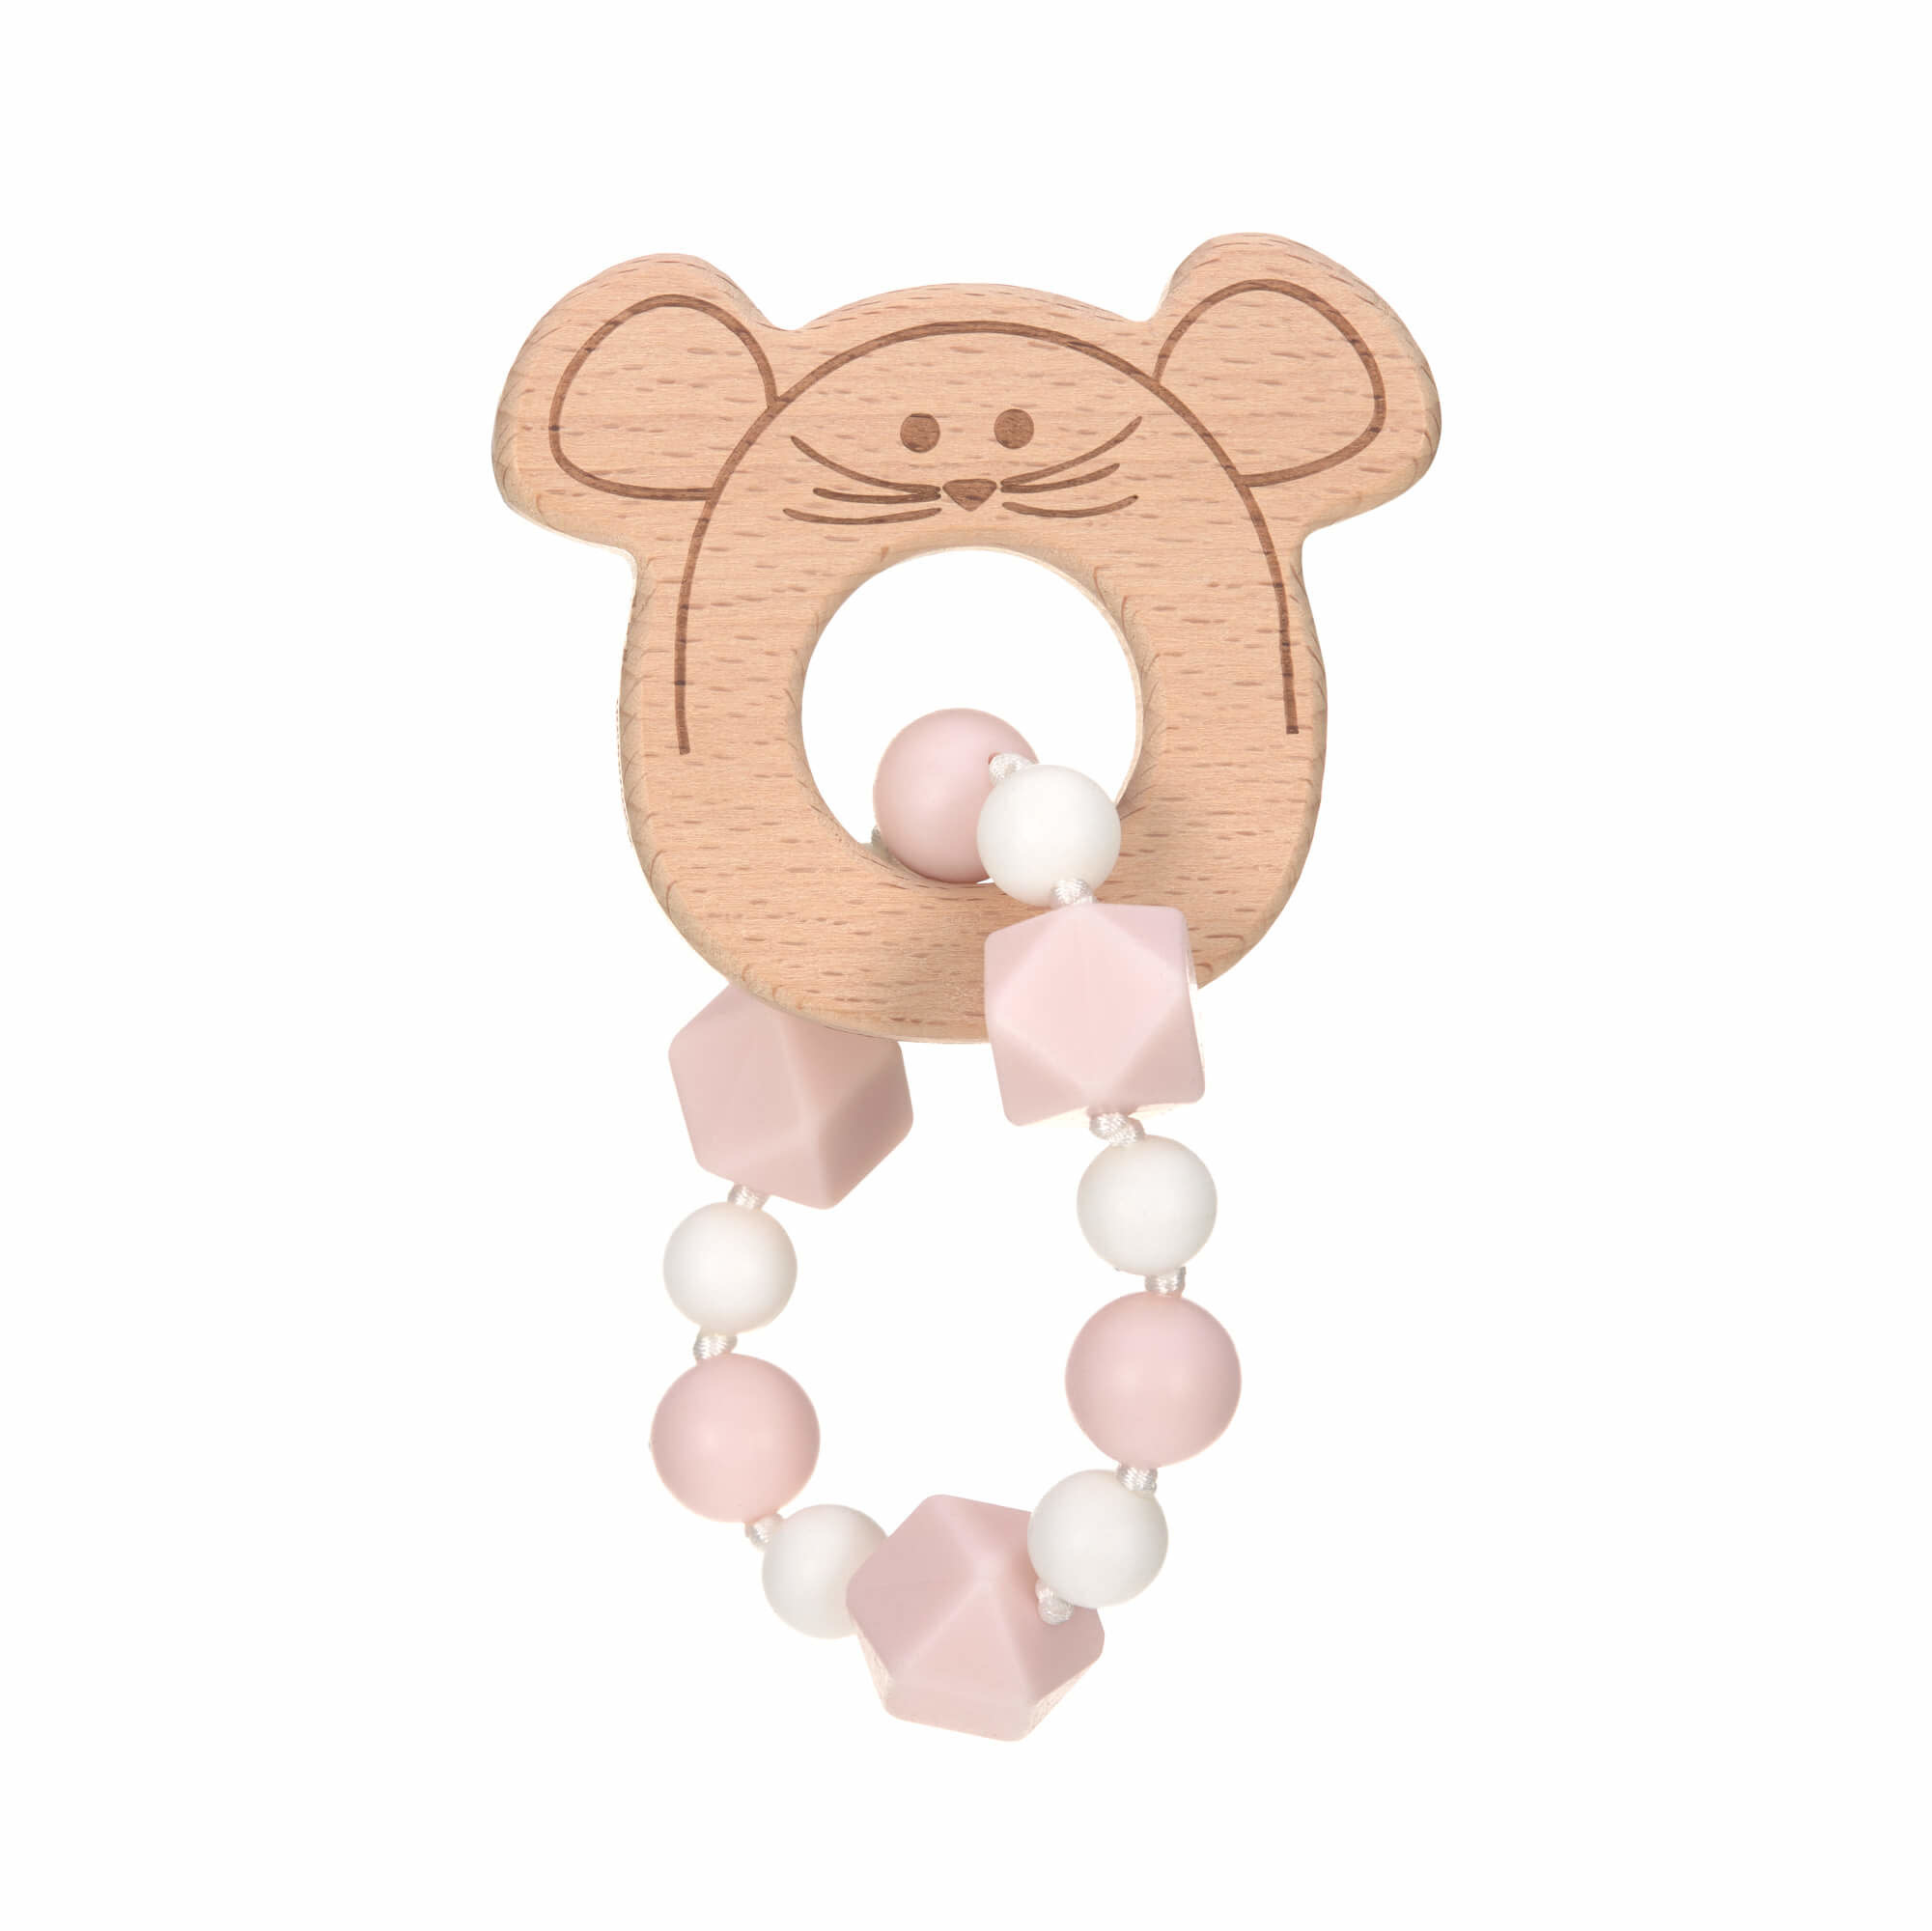 Lassig Theeter 'Bracelet' Wood/Silicone Little Chums Mouse